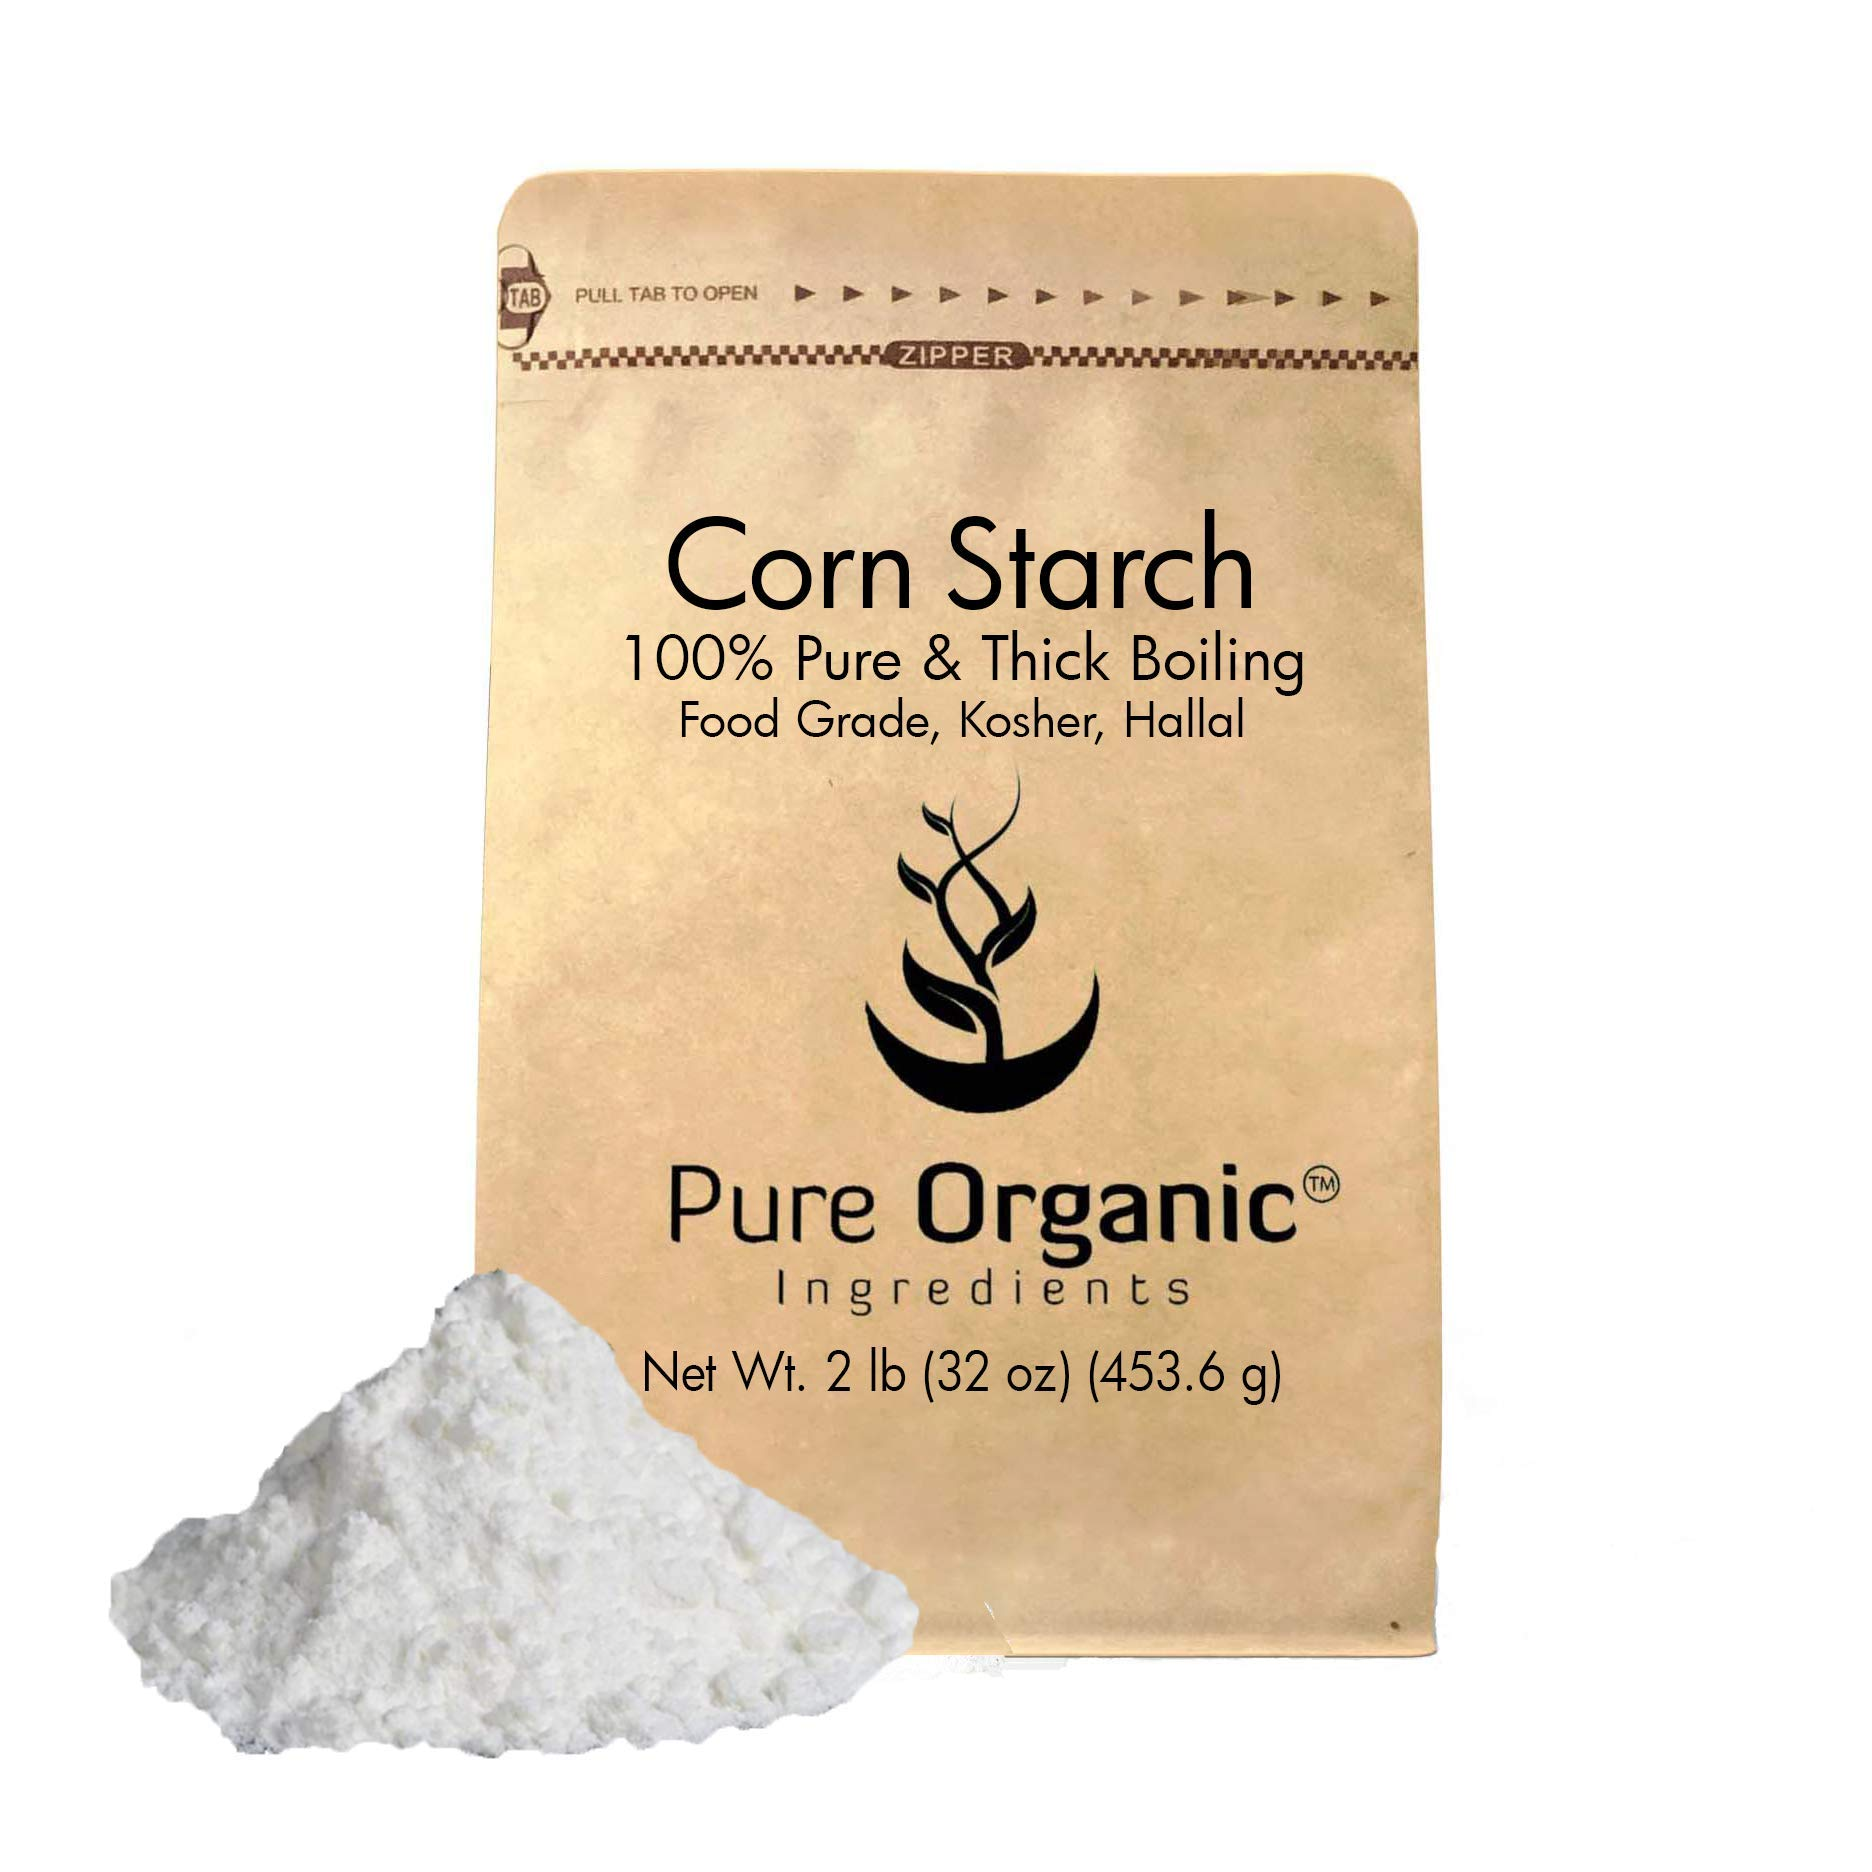 Corn Starch (2 lb.) by Pure Organic Ingredients, Thickener For Sauces, Soup, Gravy, Highest Quality, Kosher, USP & Food Grade, Vegan, Gluten Free